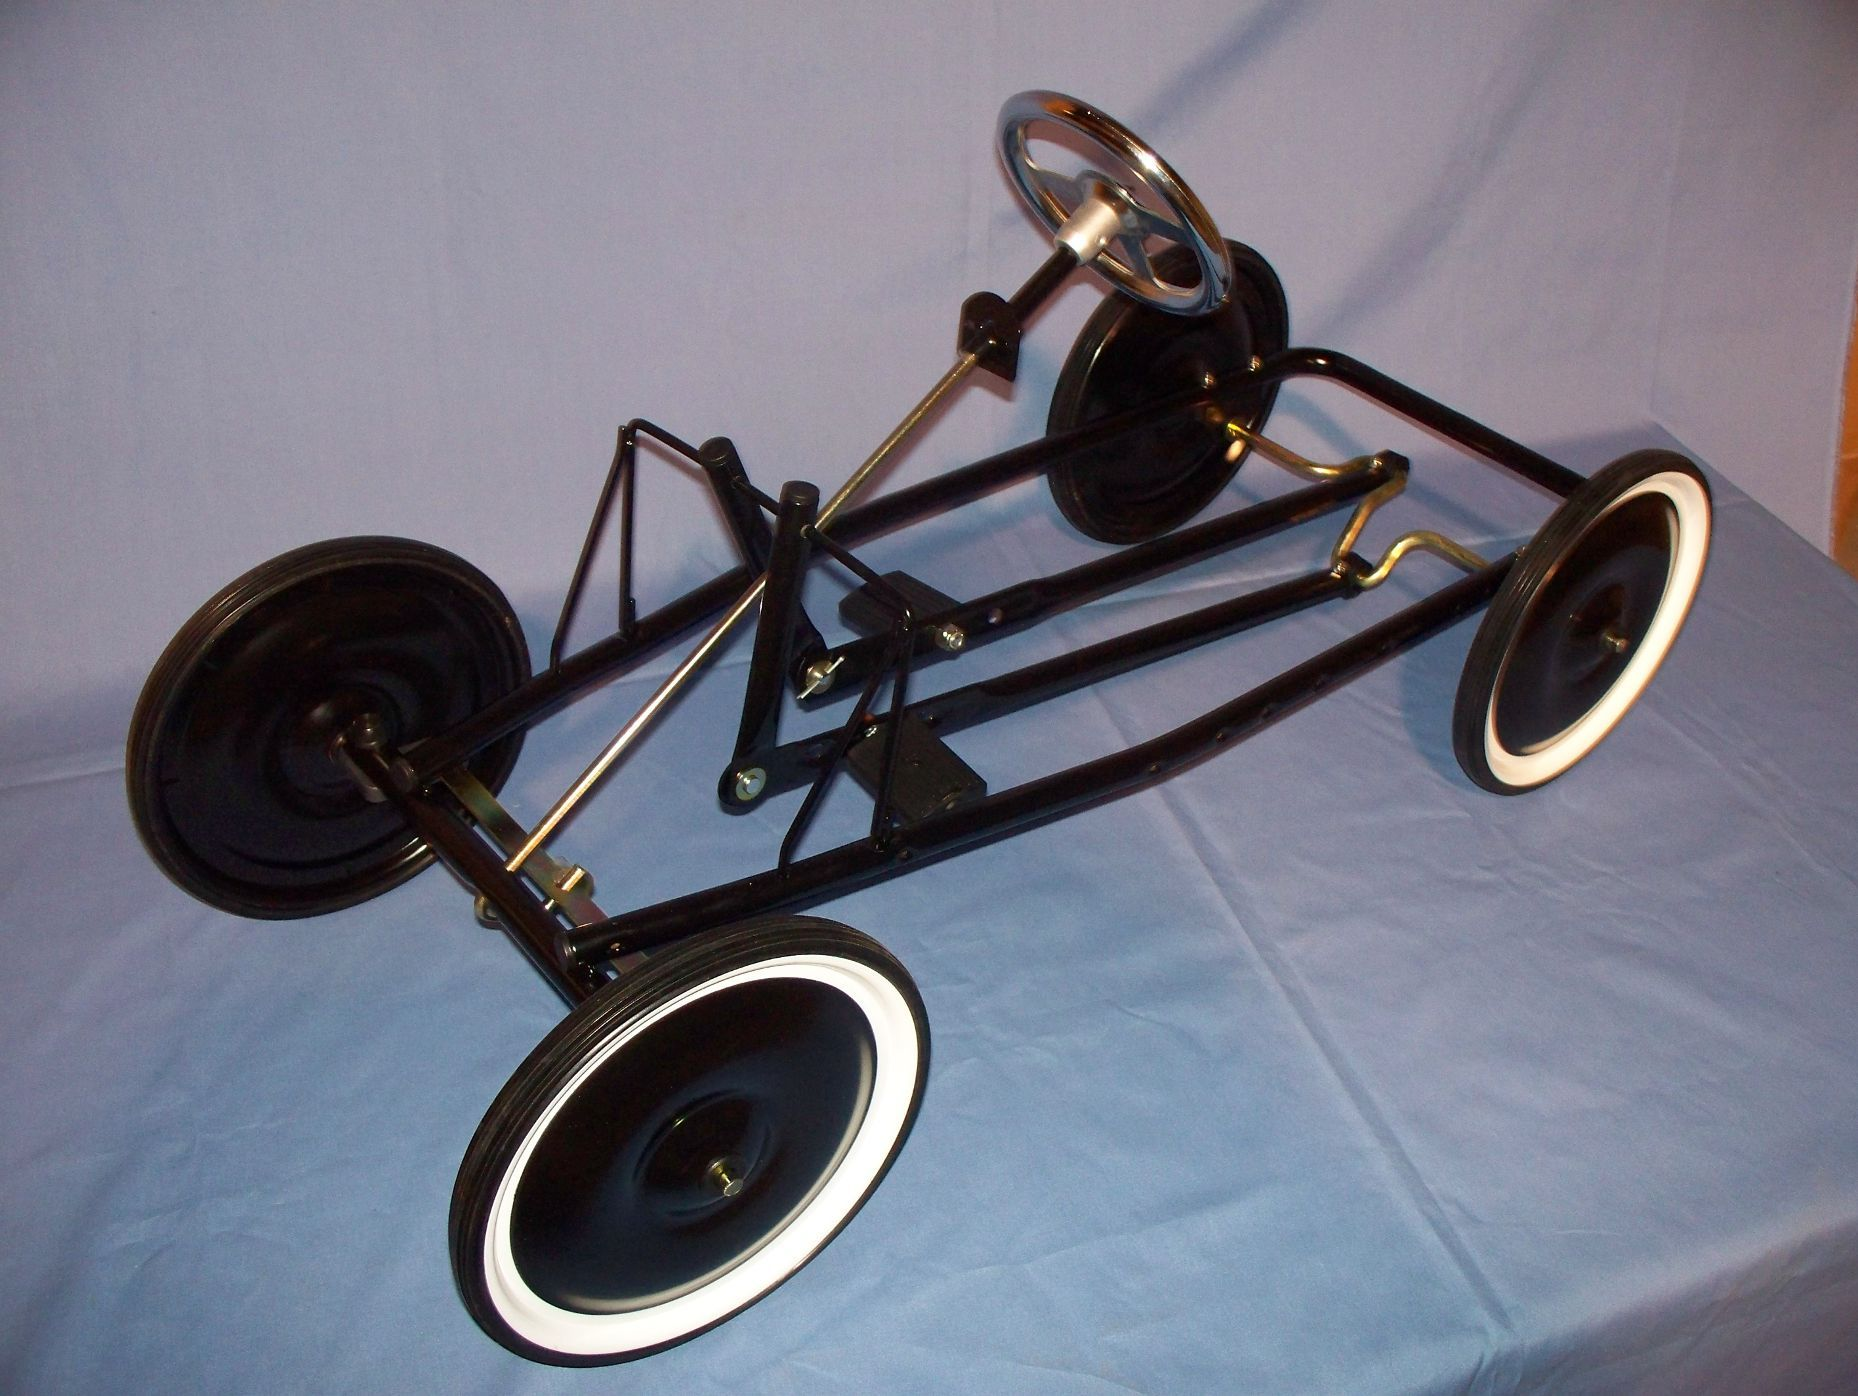 cn pedal car kit information chassis info building tips